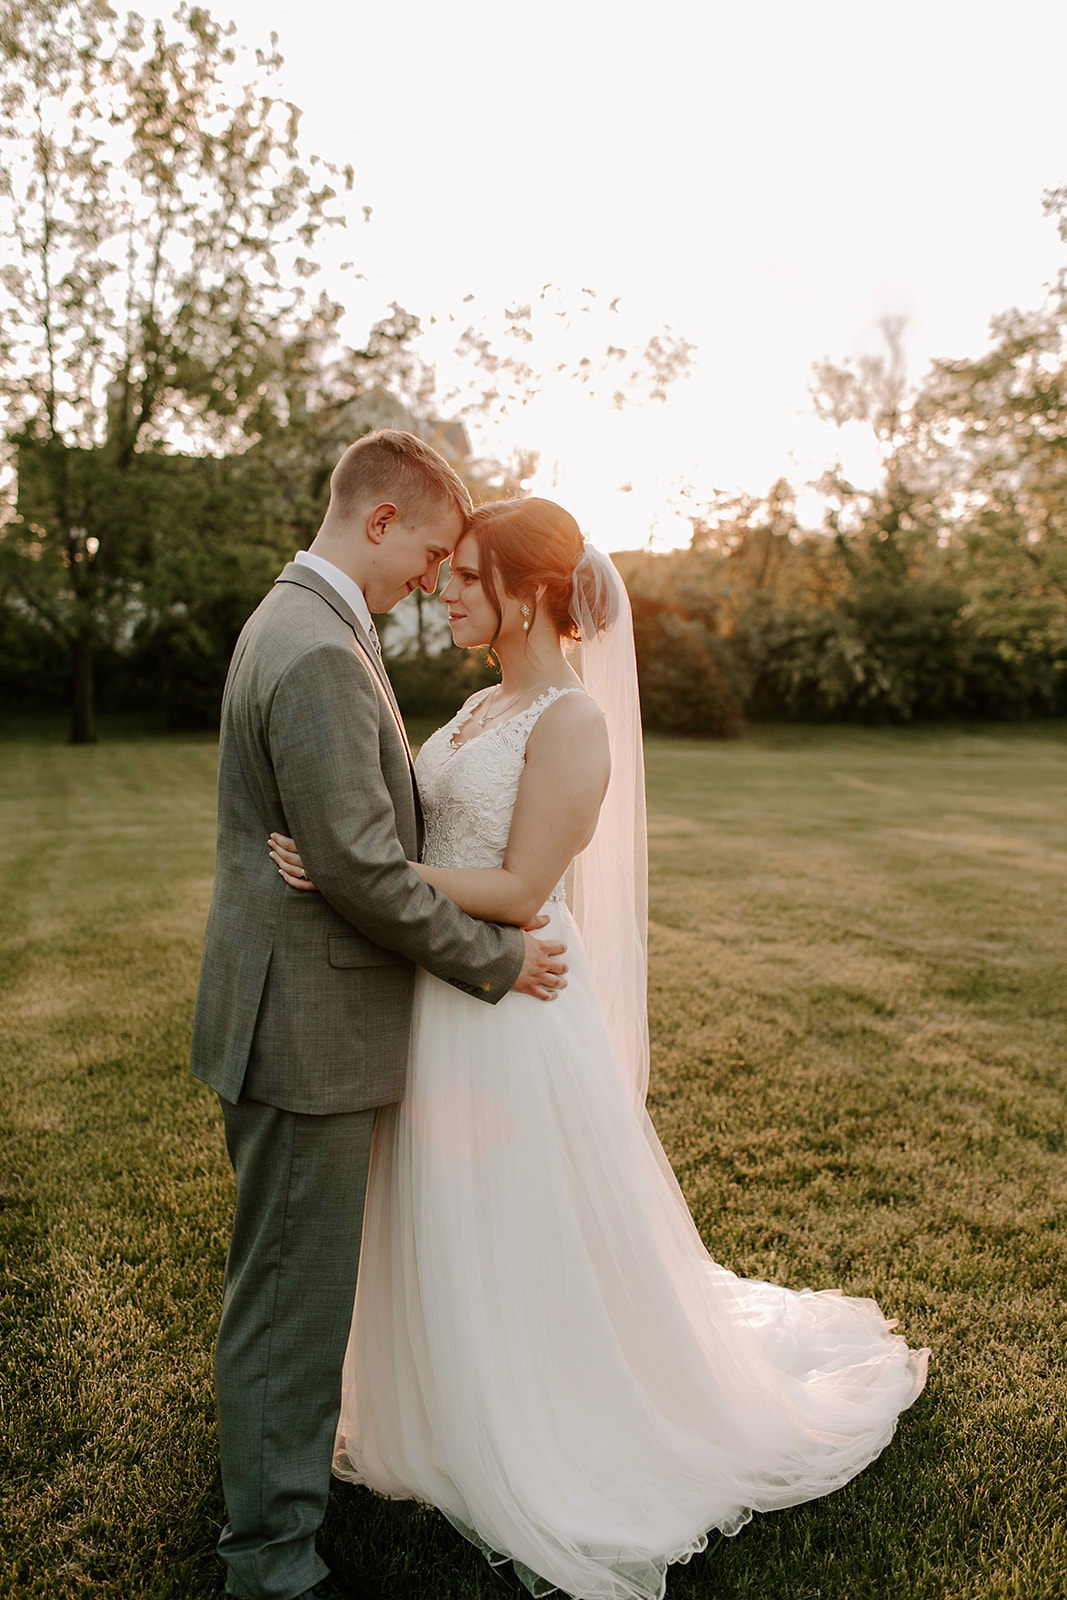 Kendra_and_Mattew_Indiana_Wedding_by_Emily_Wehner-930.jpg